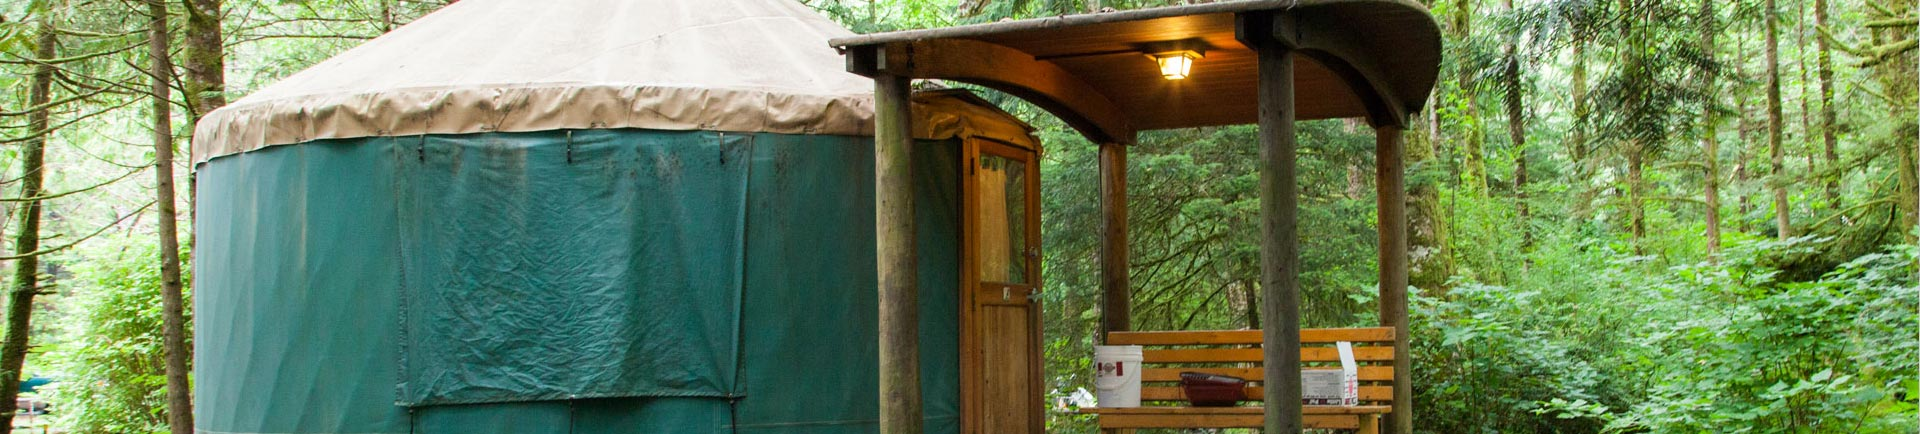 Camp On The Oregon Coast Without Reservations Tillamook